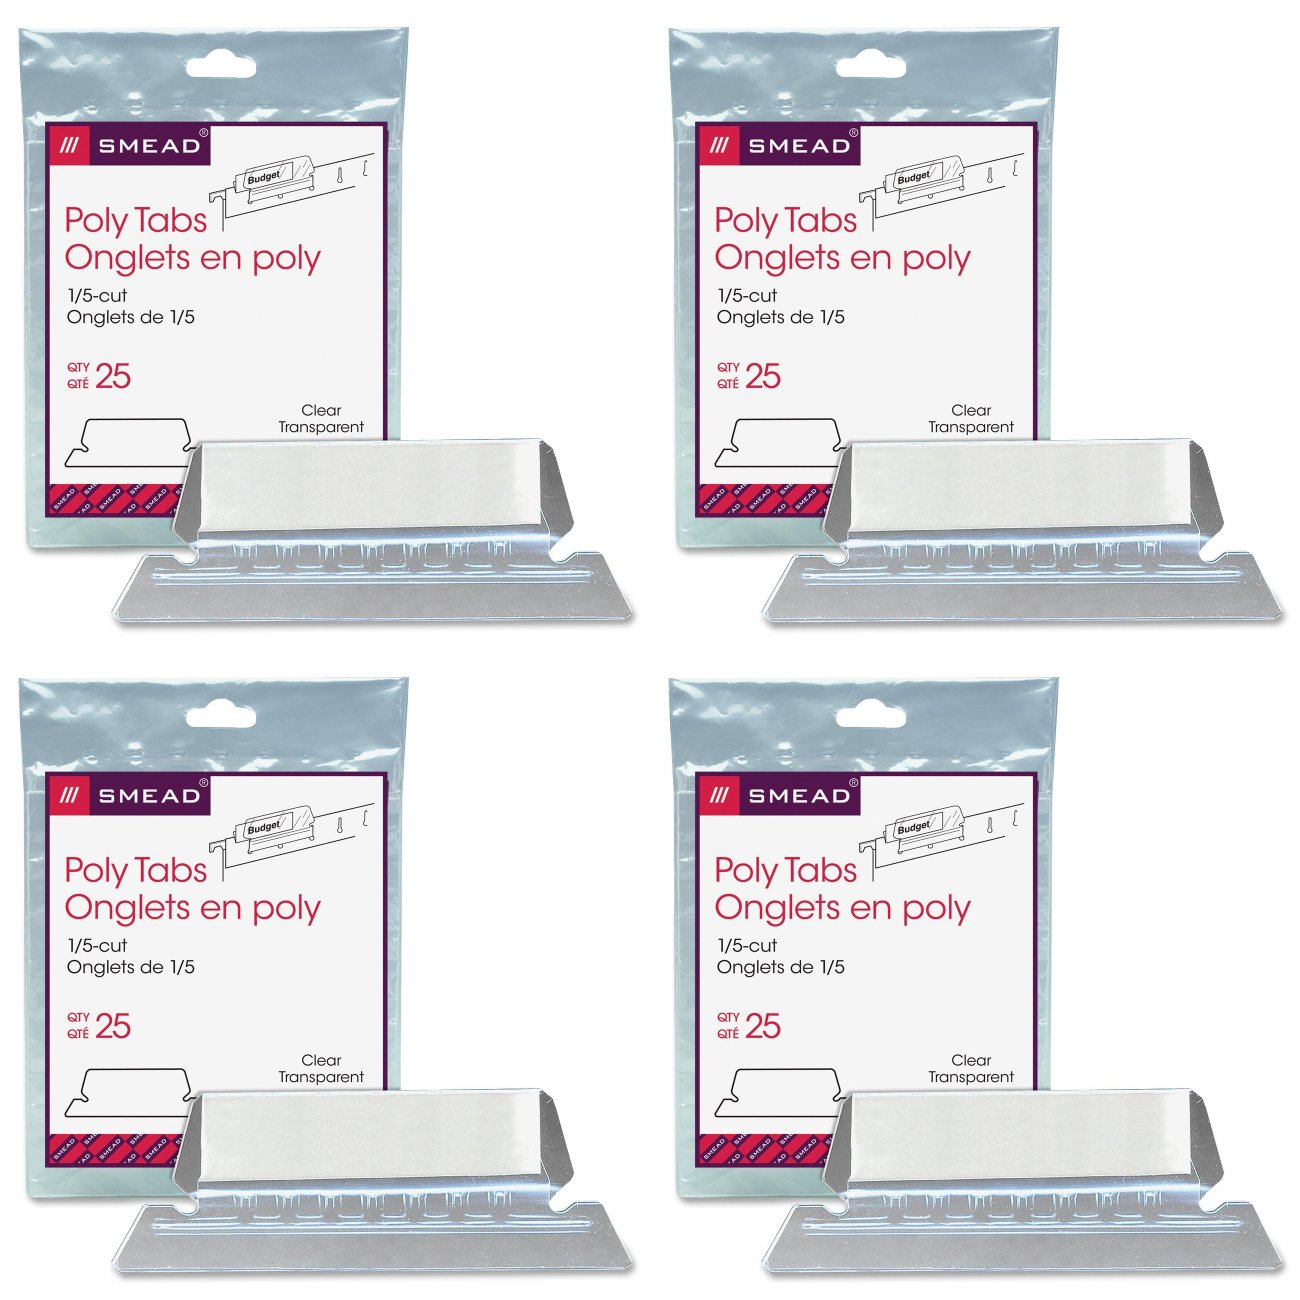 Smead Poly Tab 1/5 Cut Tab, Clear, 25 Per Pack (64600), 4 Packs